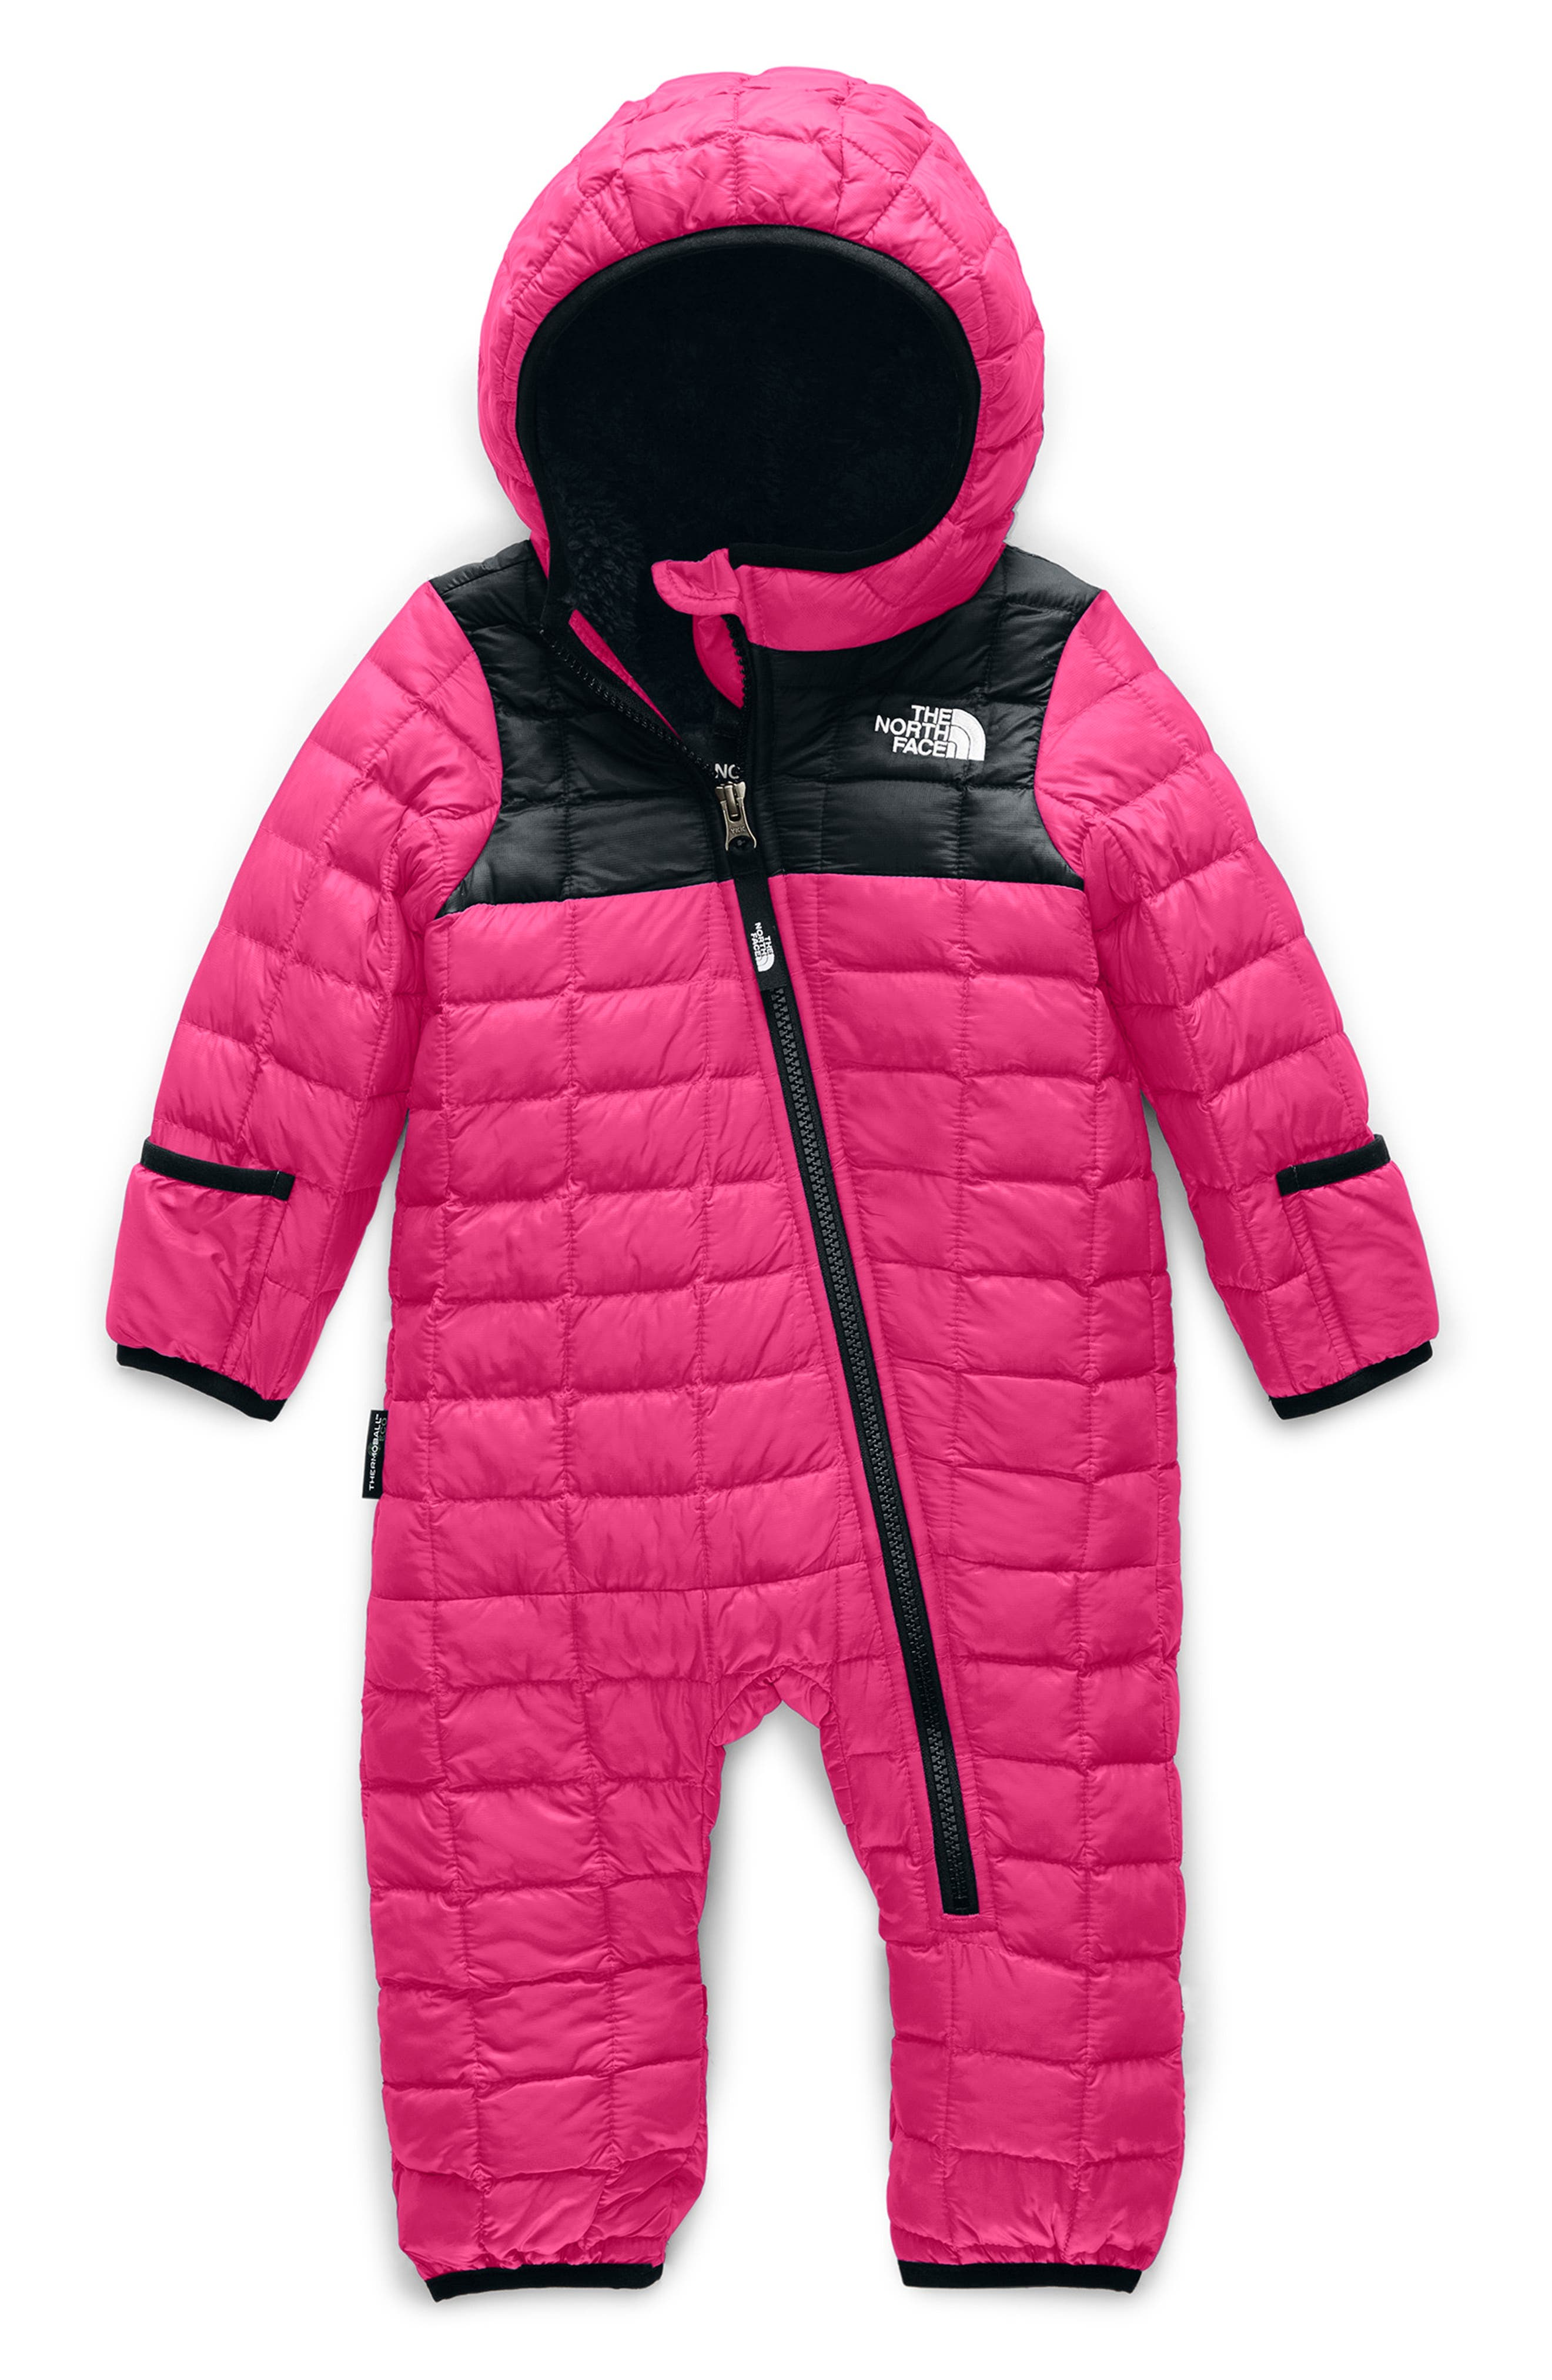 North Face Baby The ClothingShoesamp; AccessoriesNordstrom rdxoCBeW